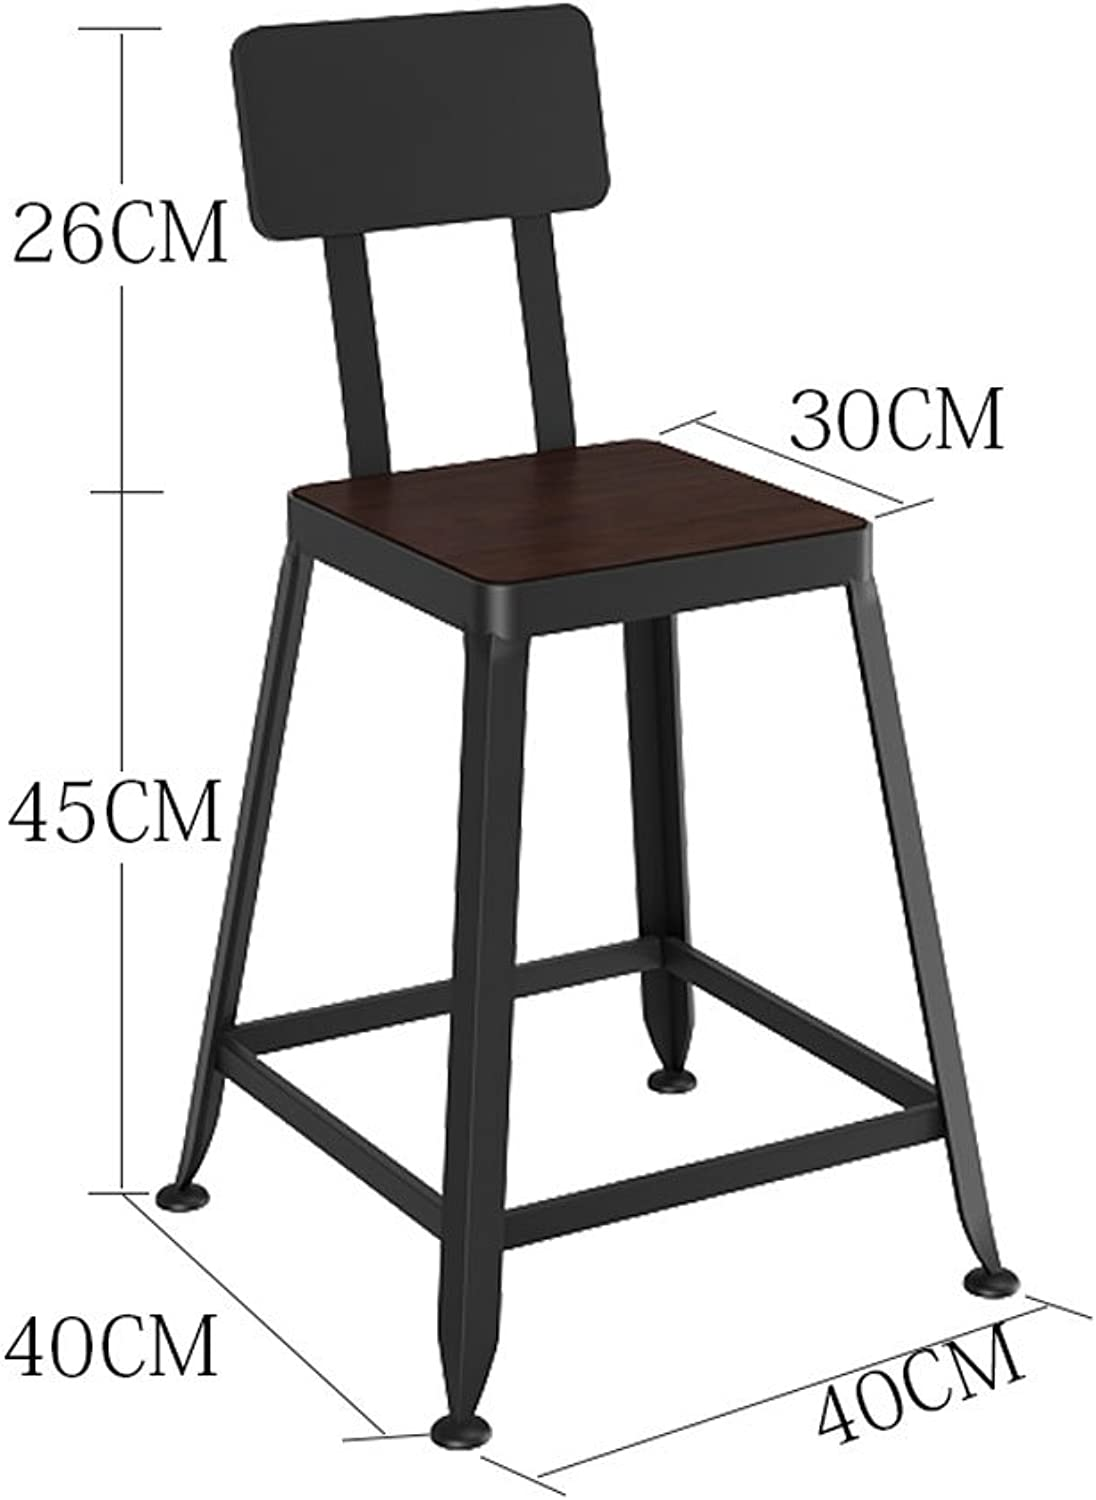 HQCC Bar stools Solid Wood European Wrought Iron Bar stools Bar stools Modern Minimalist Chairs High stools Bar stools (color   Without Leather, Size   40  40  45cm)